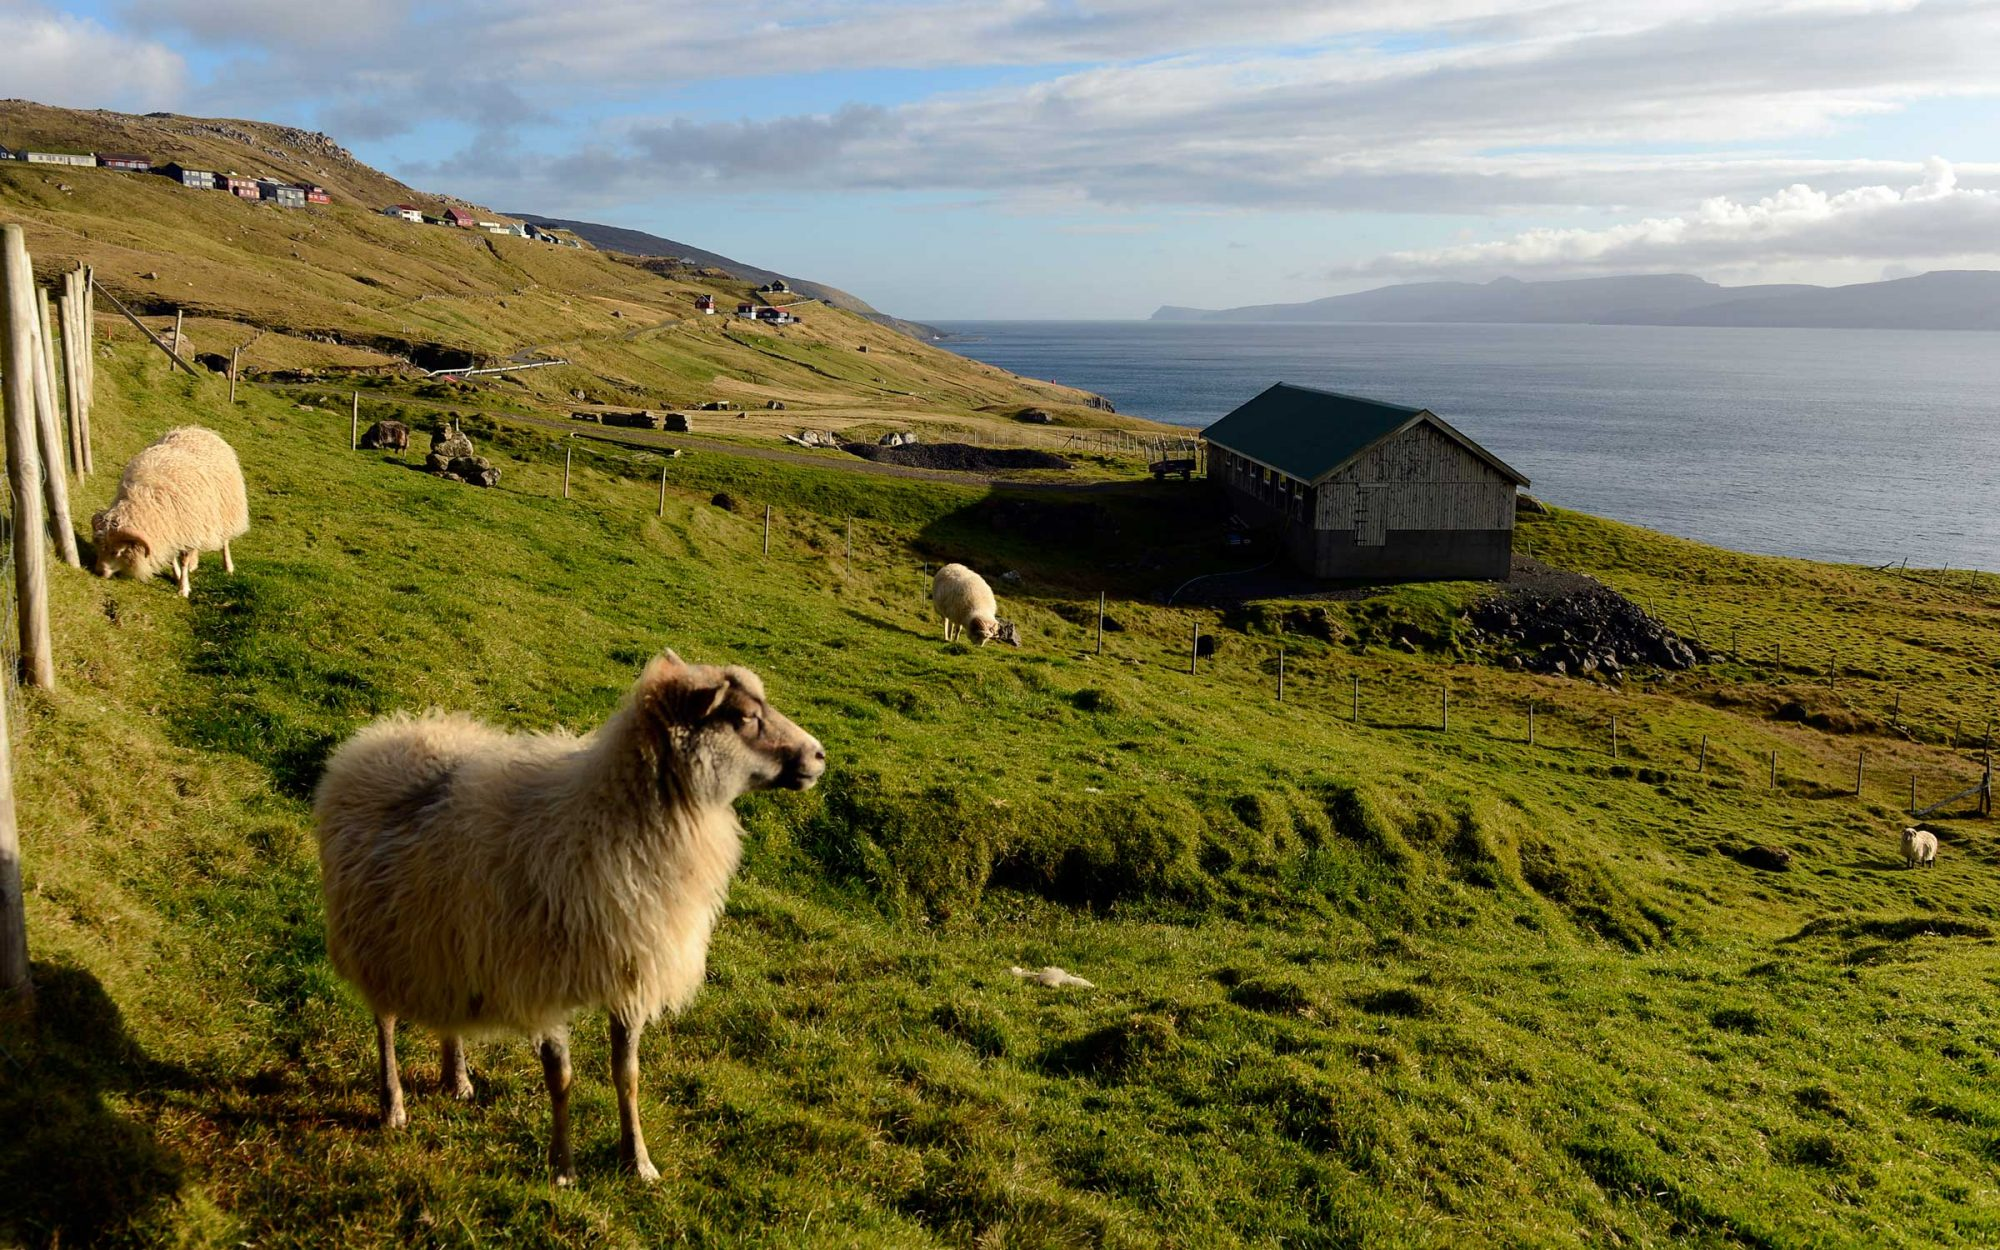 Faroe Islands Puts Cameras on Sheep Because They Don't Have Google Street View